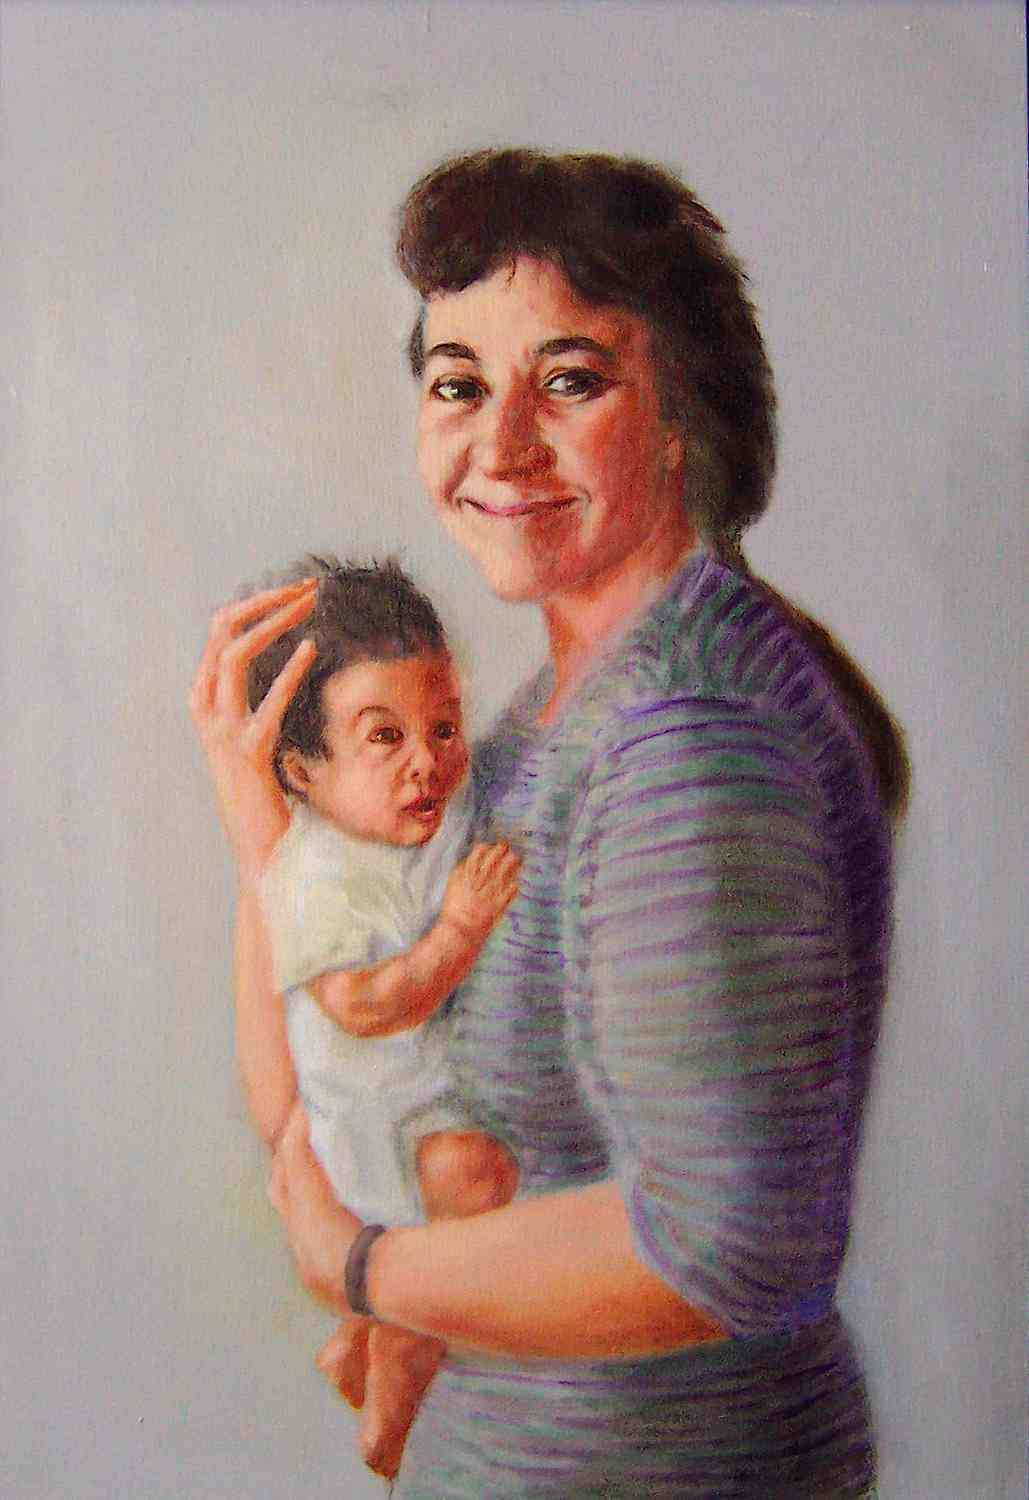 04_mother_child_1998_26x18